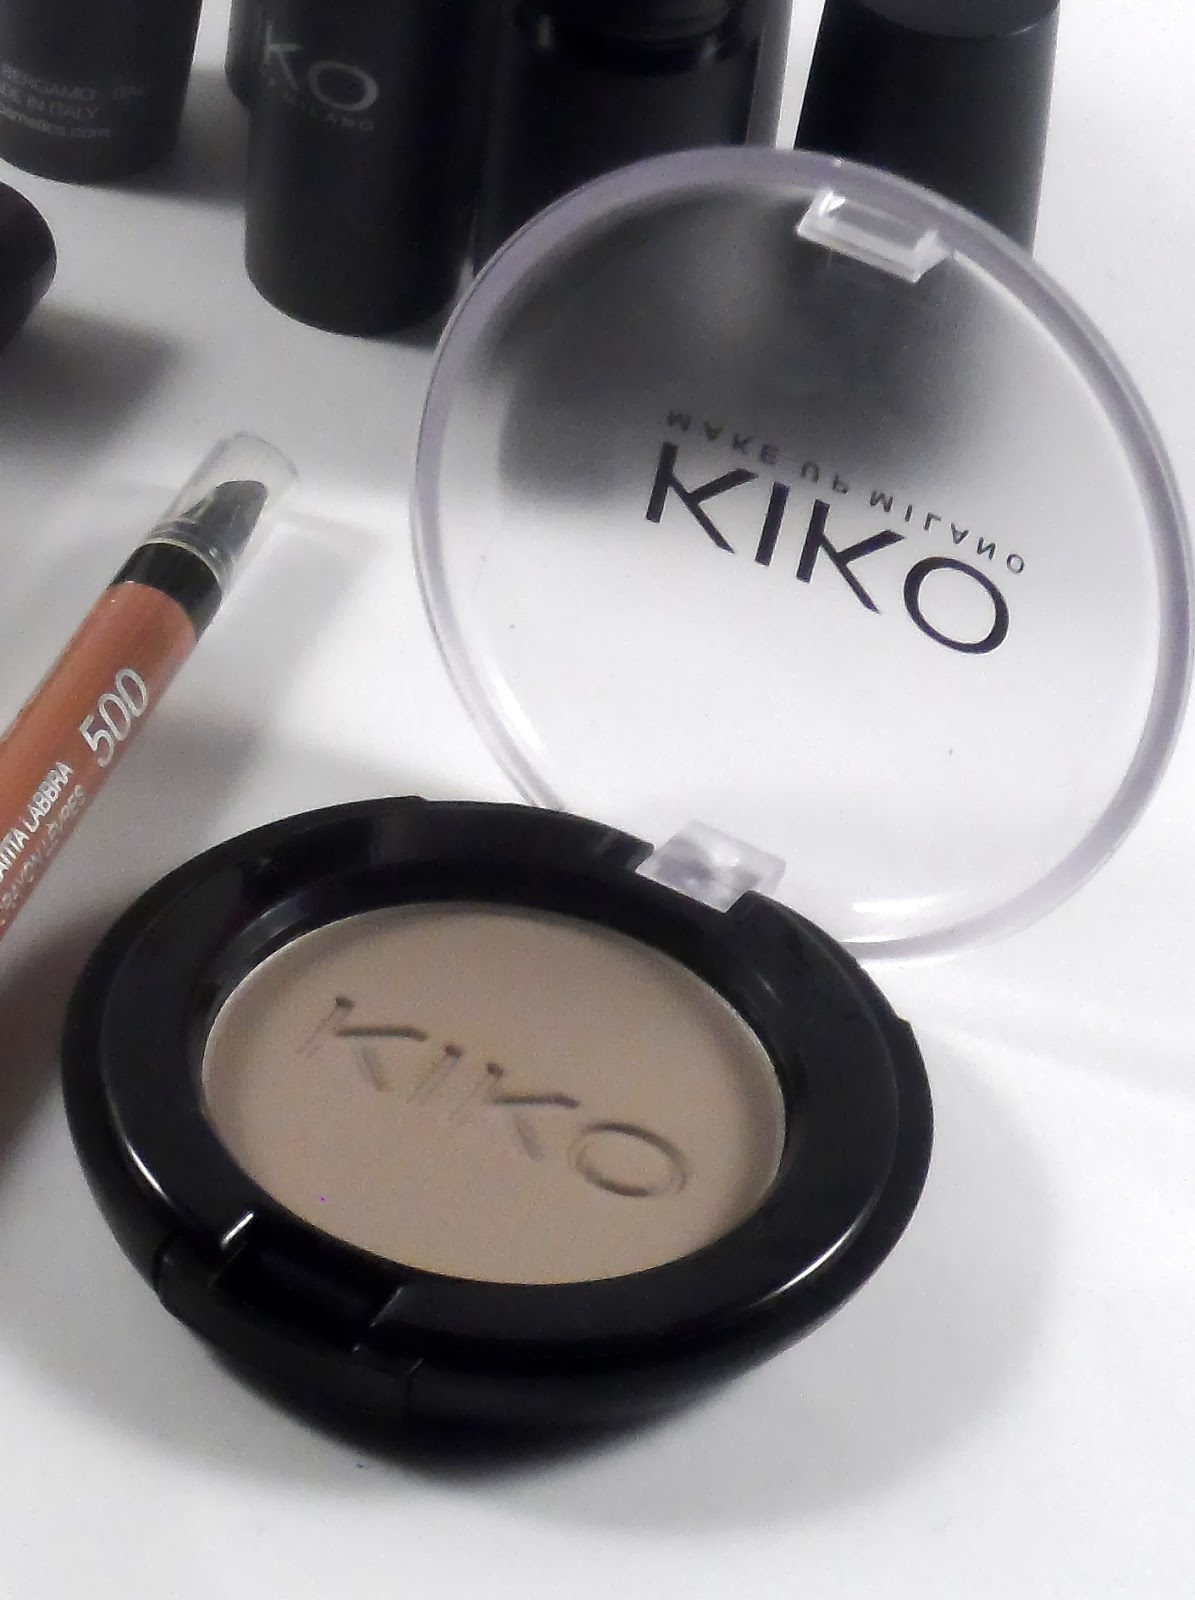 kiko+eyeshadow+122